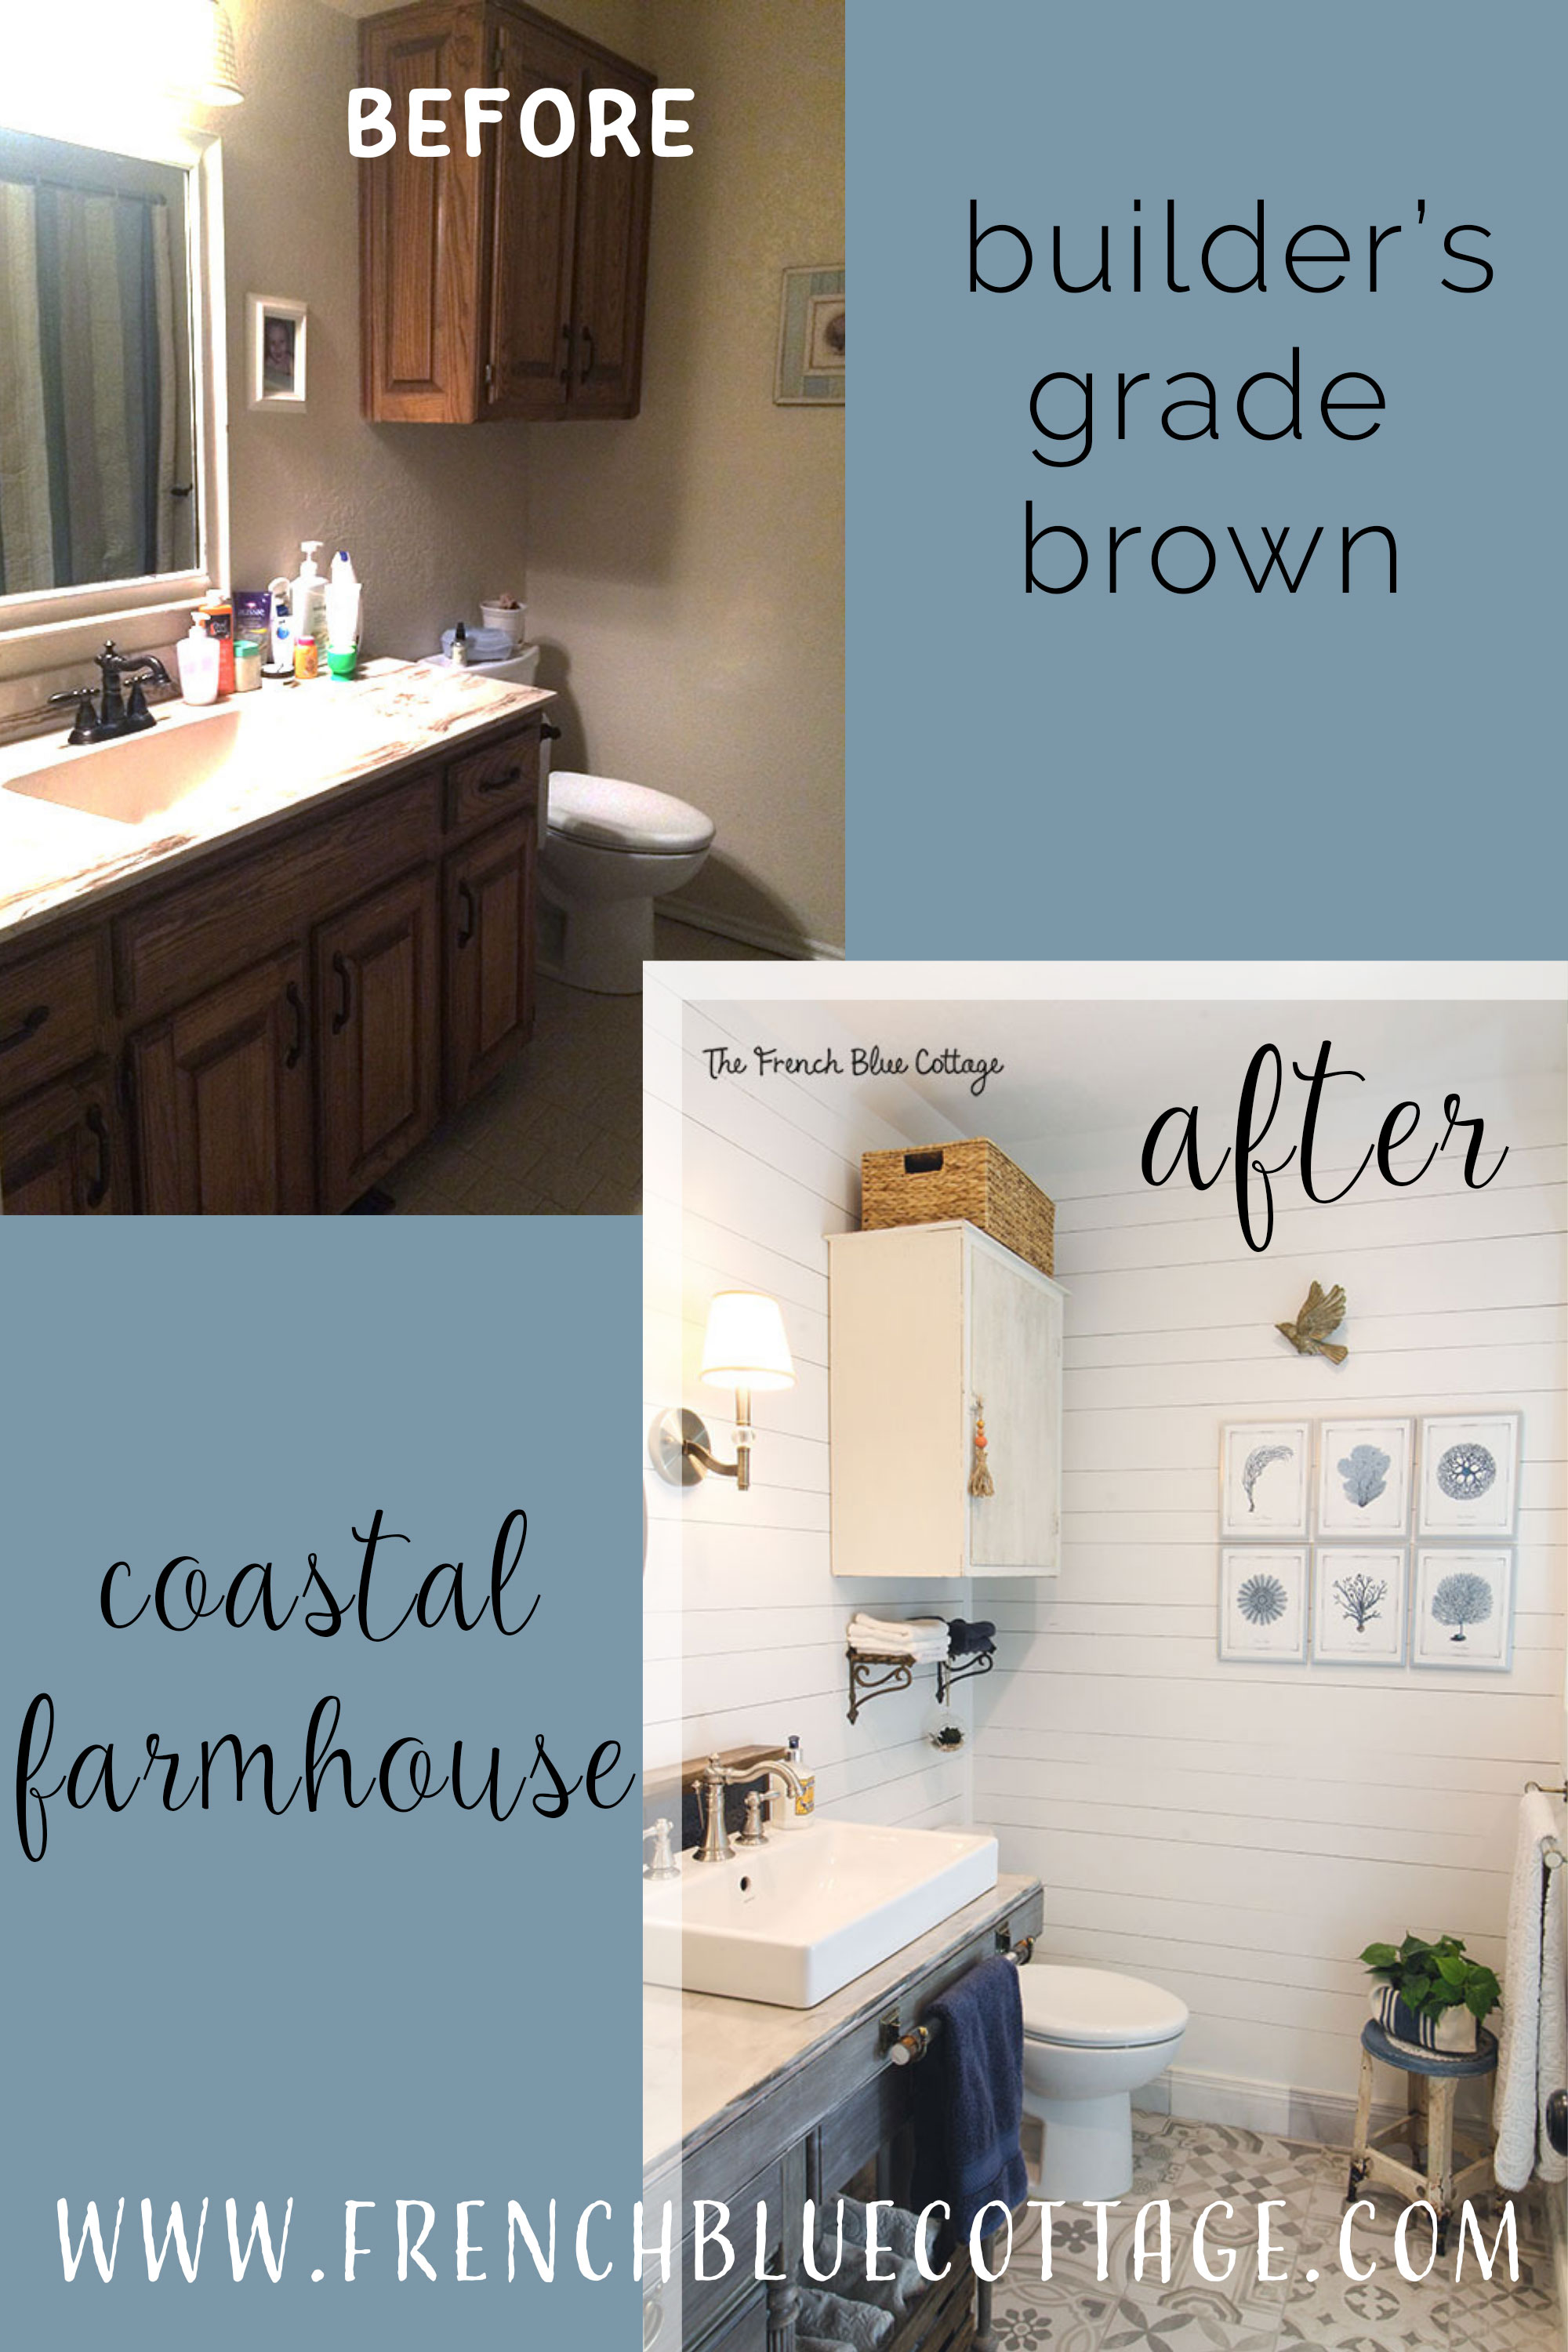 coastal farmhouse bathroom before and after